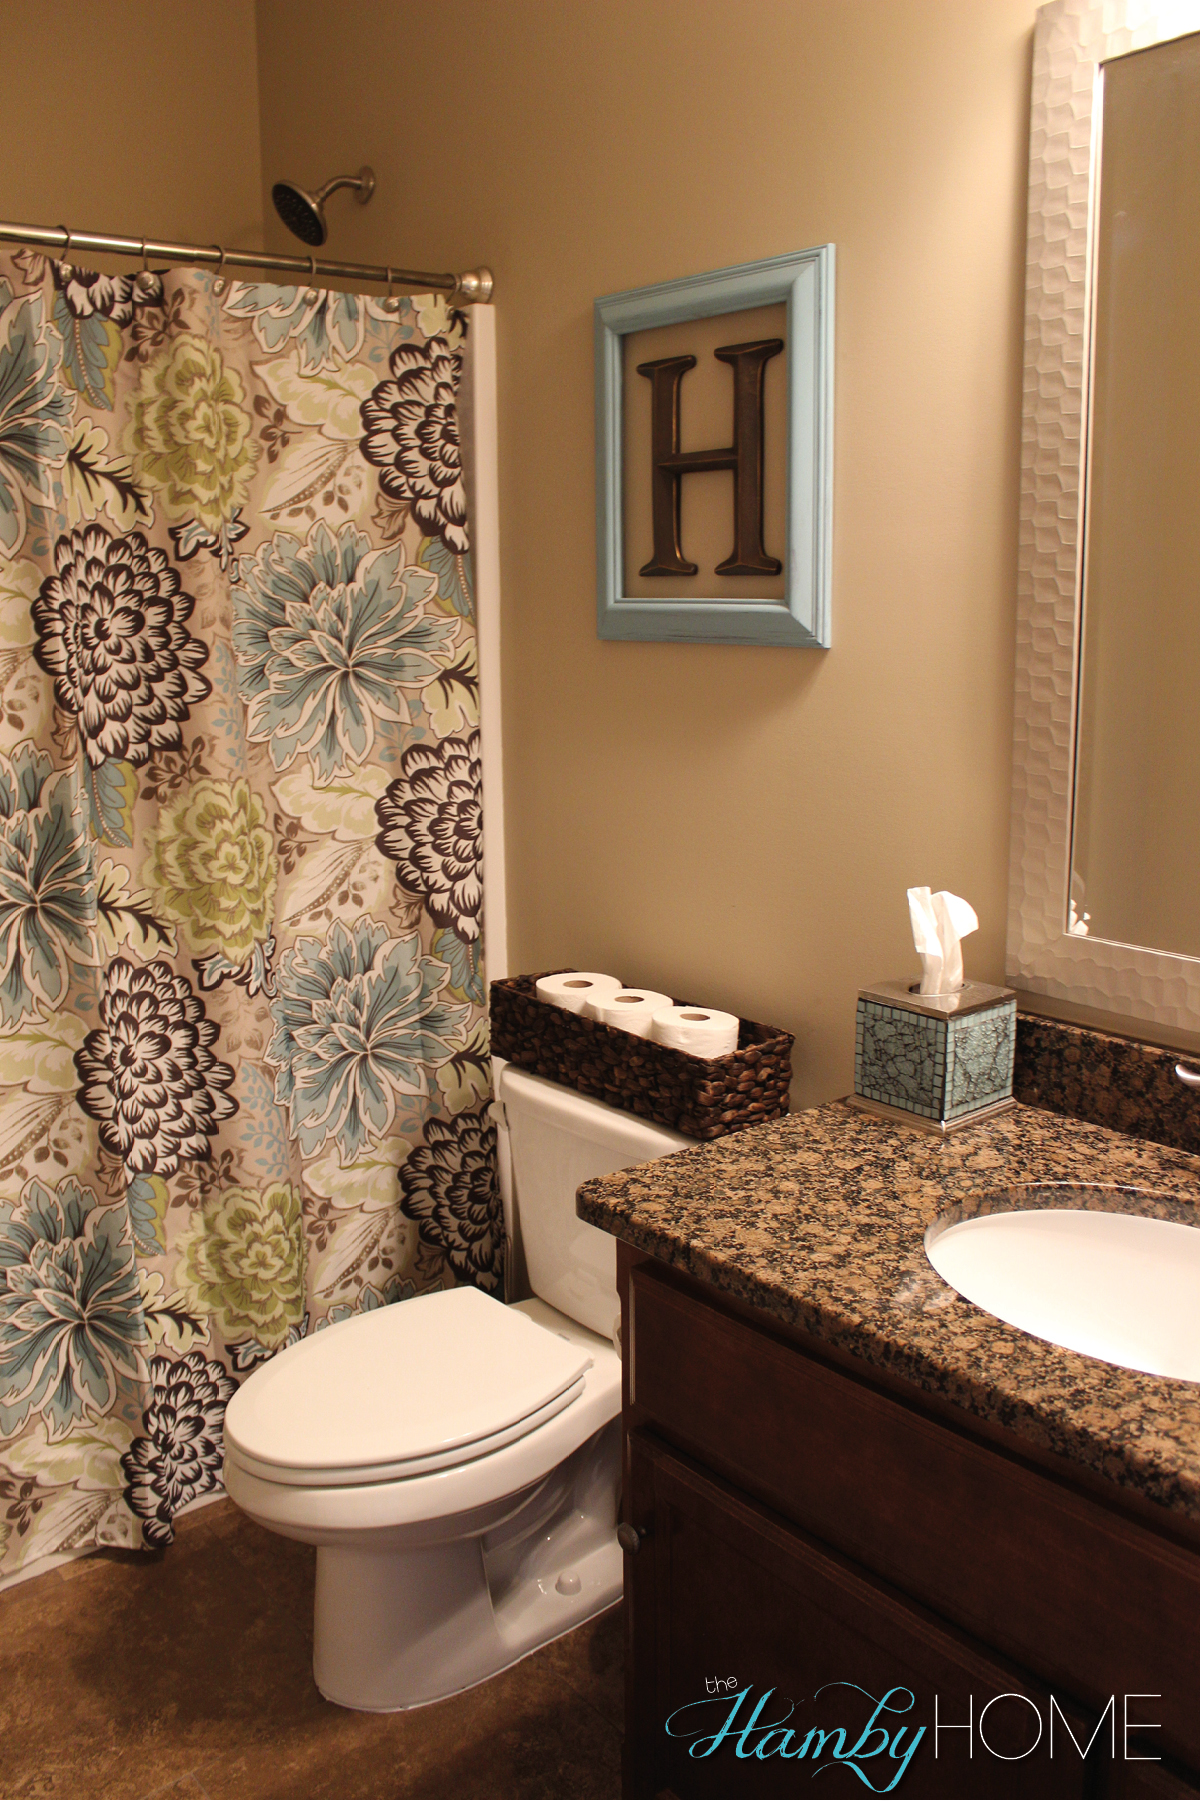 TGIF House Tour - Guest Bathroom - The Hamby Home